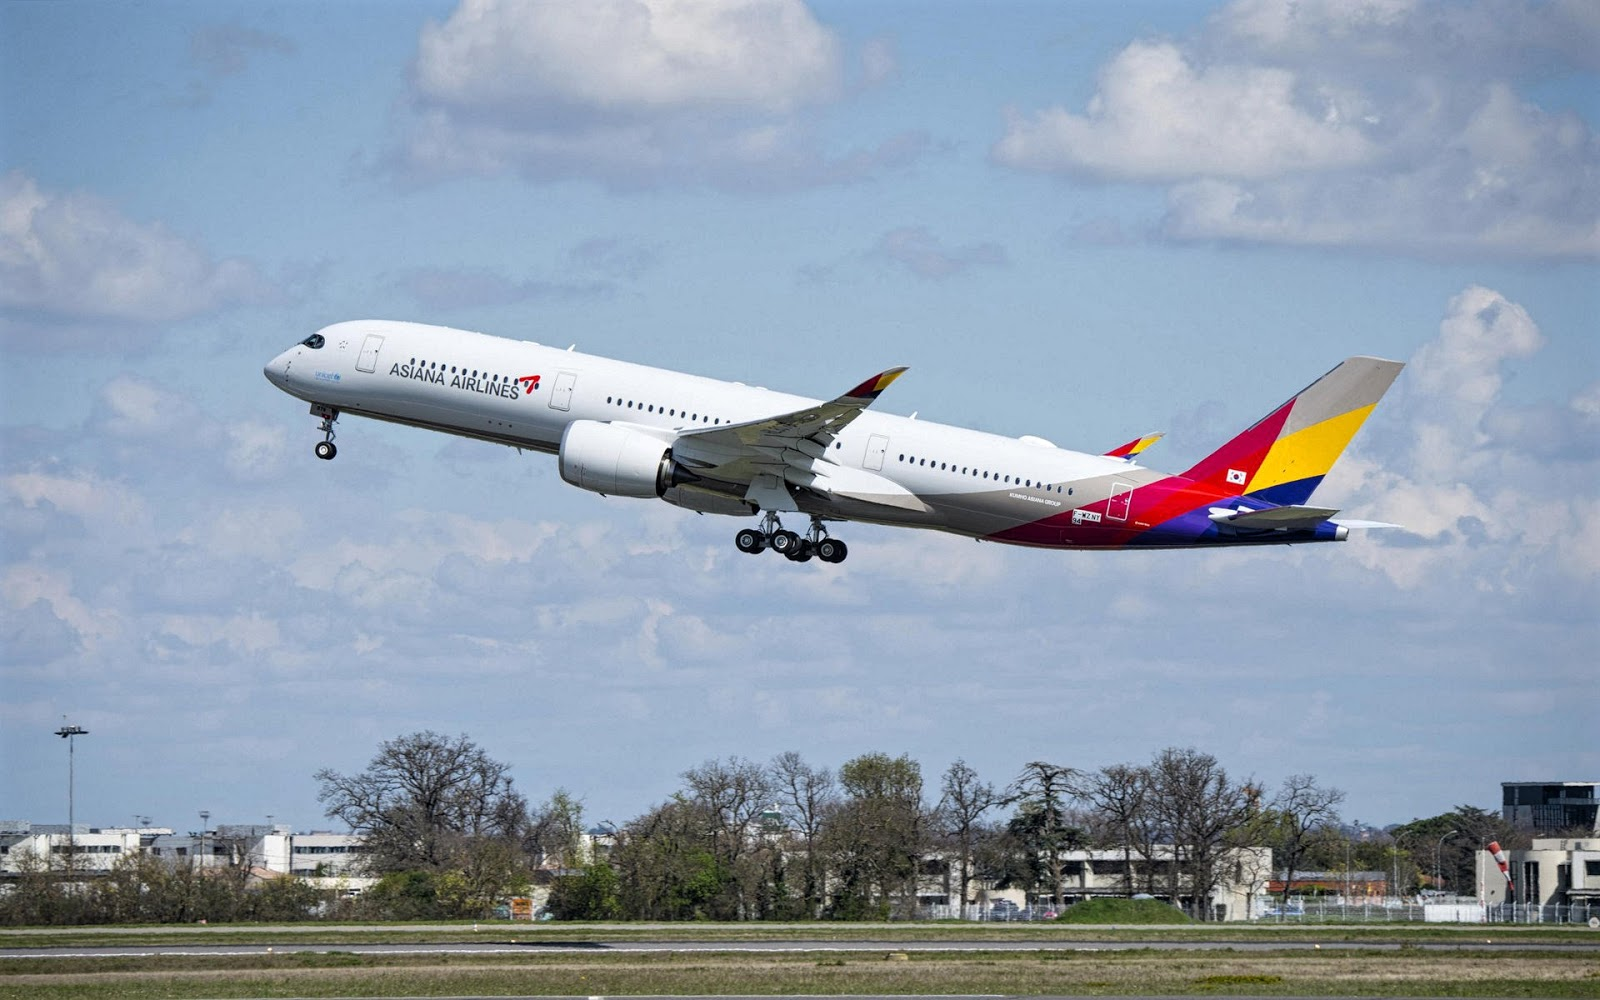 Asiana Airbus A350-900 Takeoff